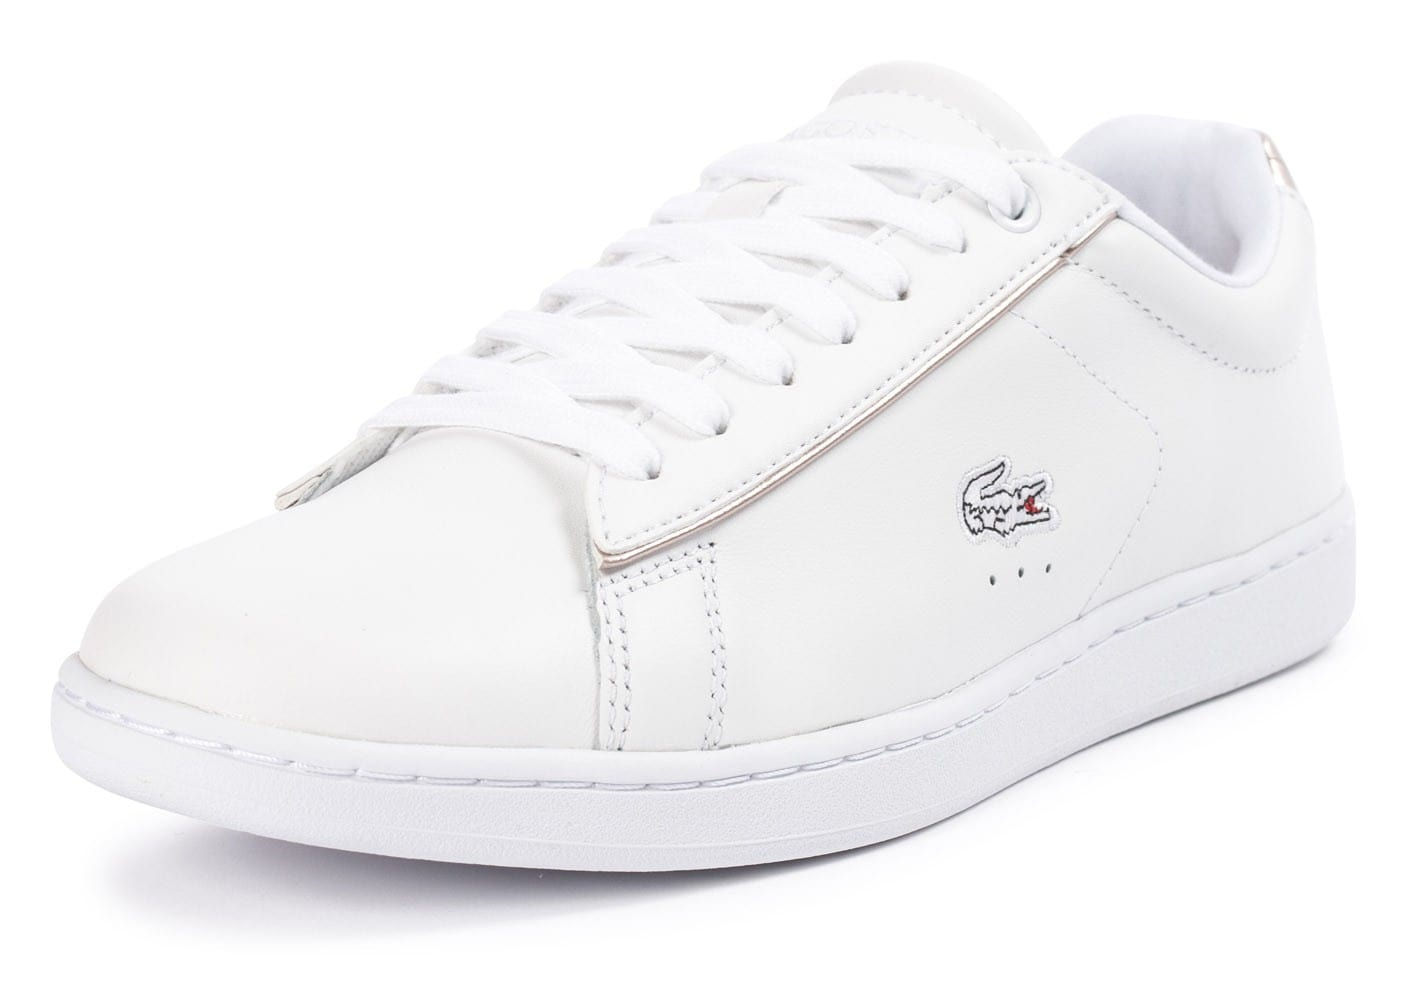 Soldes lacoste carnaby evo blanche chaussures toutes les - Lacoste carnaby evo cls baskets en cuir perfore ...